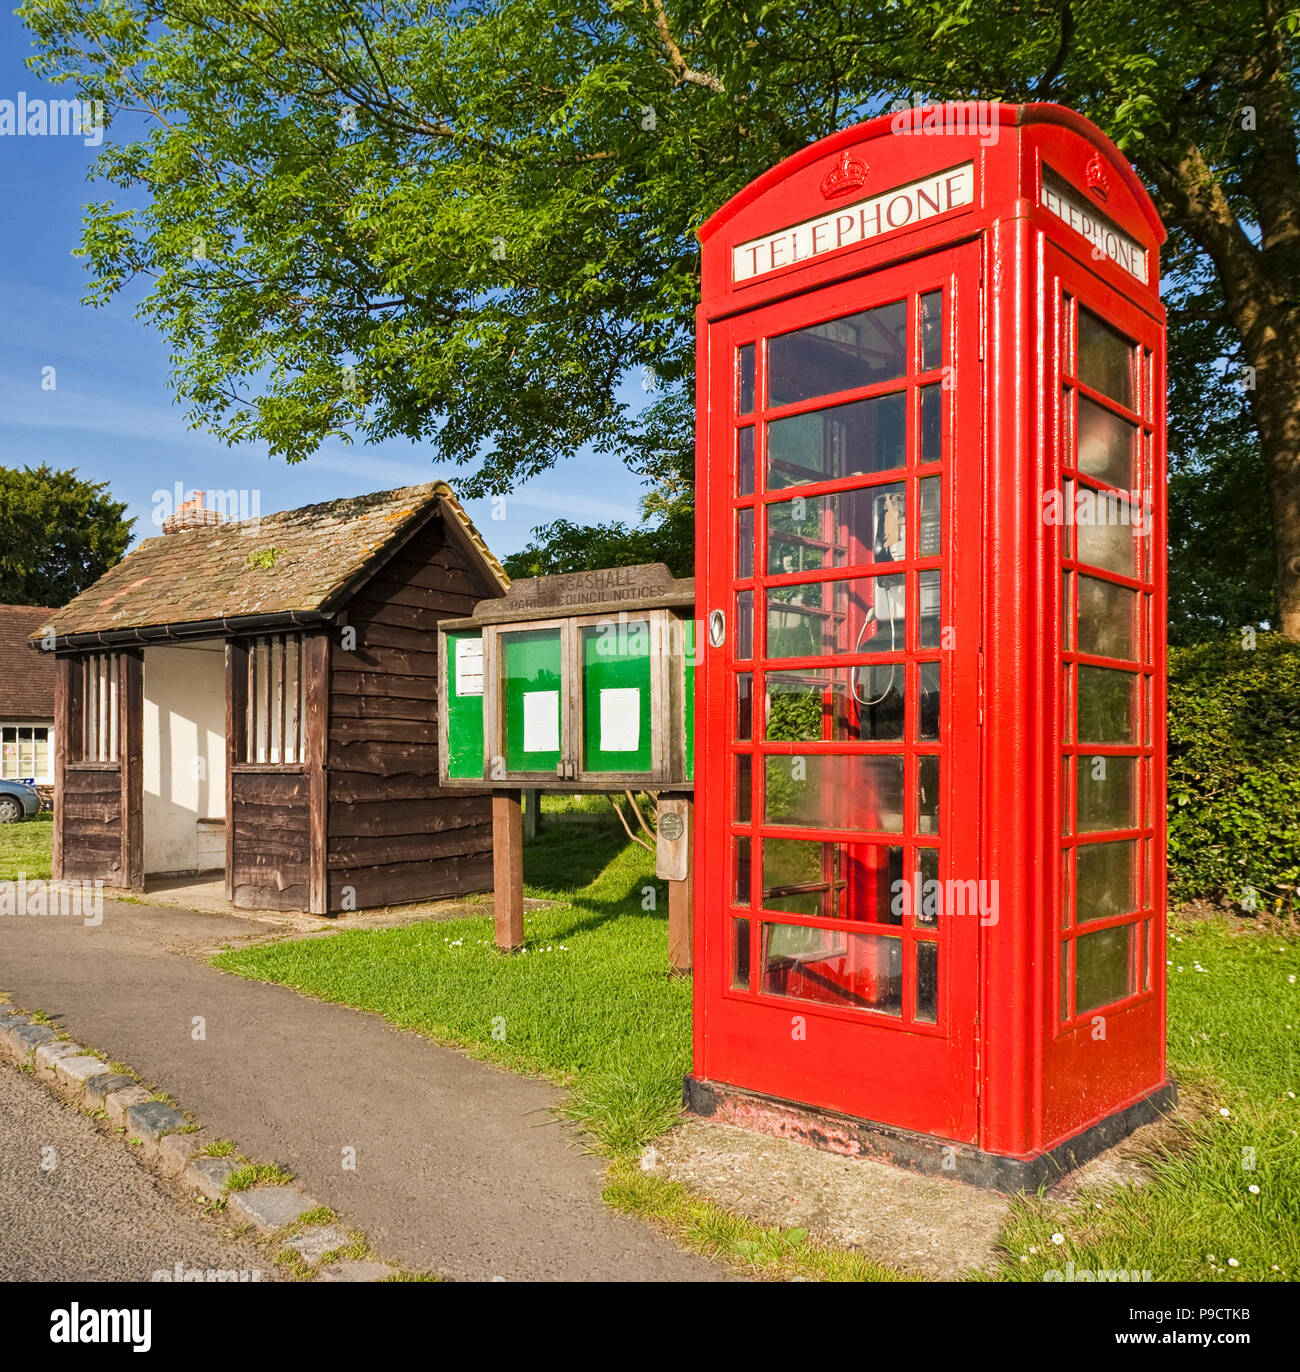 Traditional British red phone box, bus shelter and village notice board scene at Lurgashall, West Sussex, England, UK - Stock Image